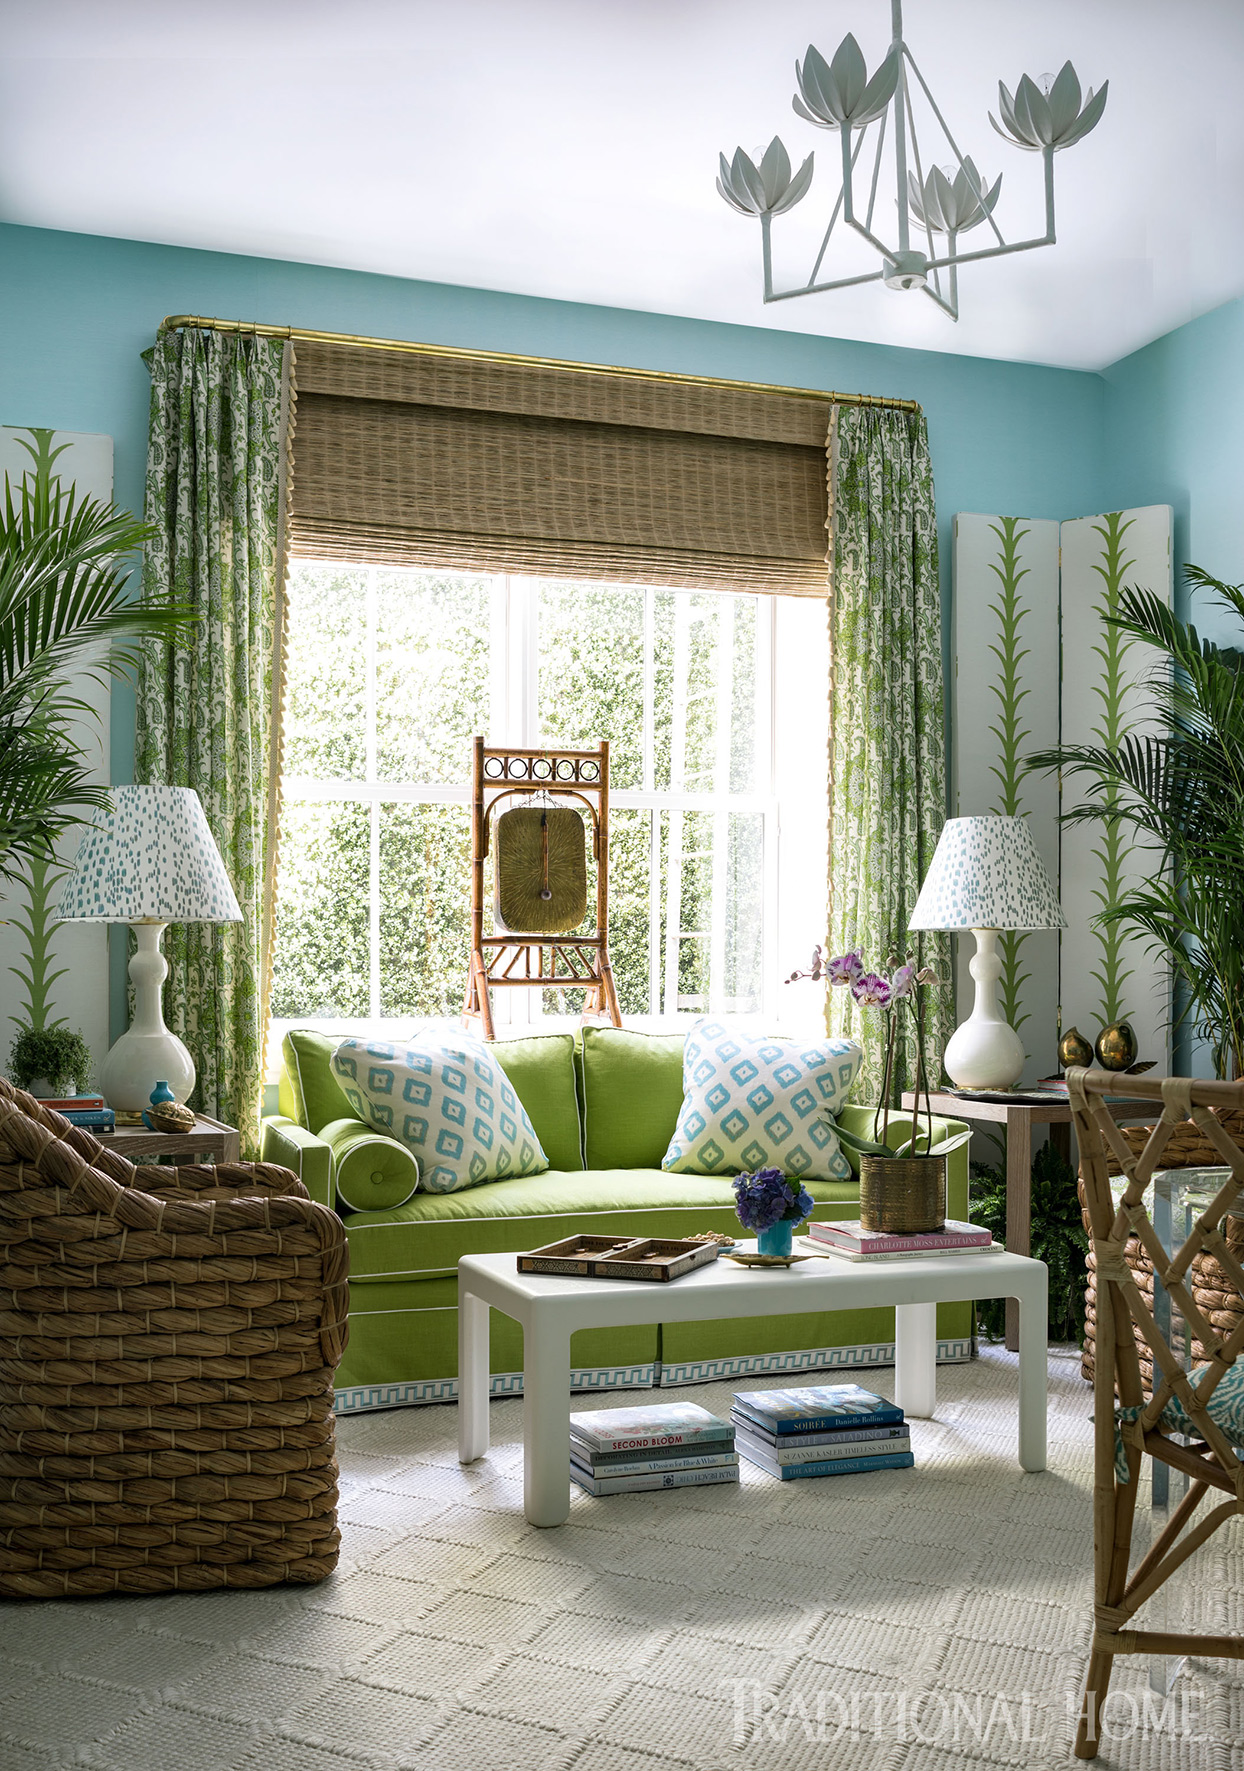 Seating area with green couch and patterned curtains